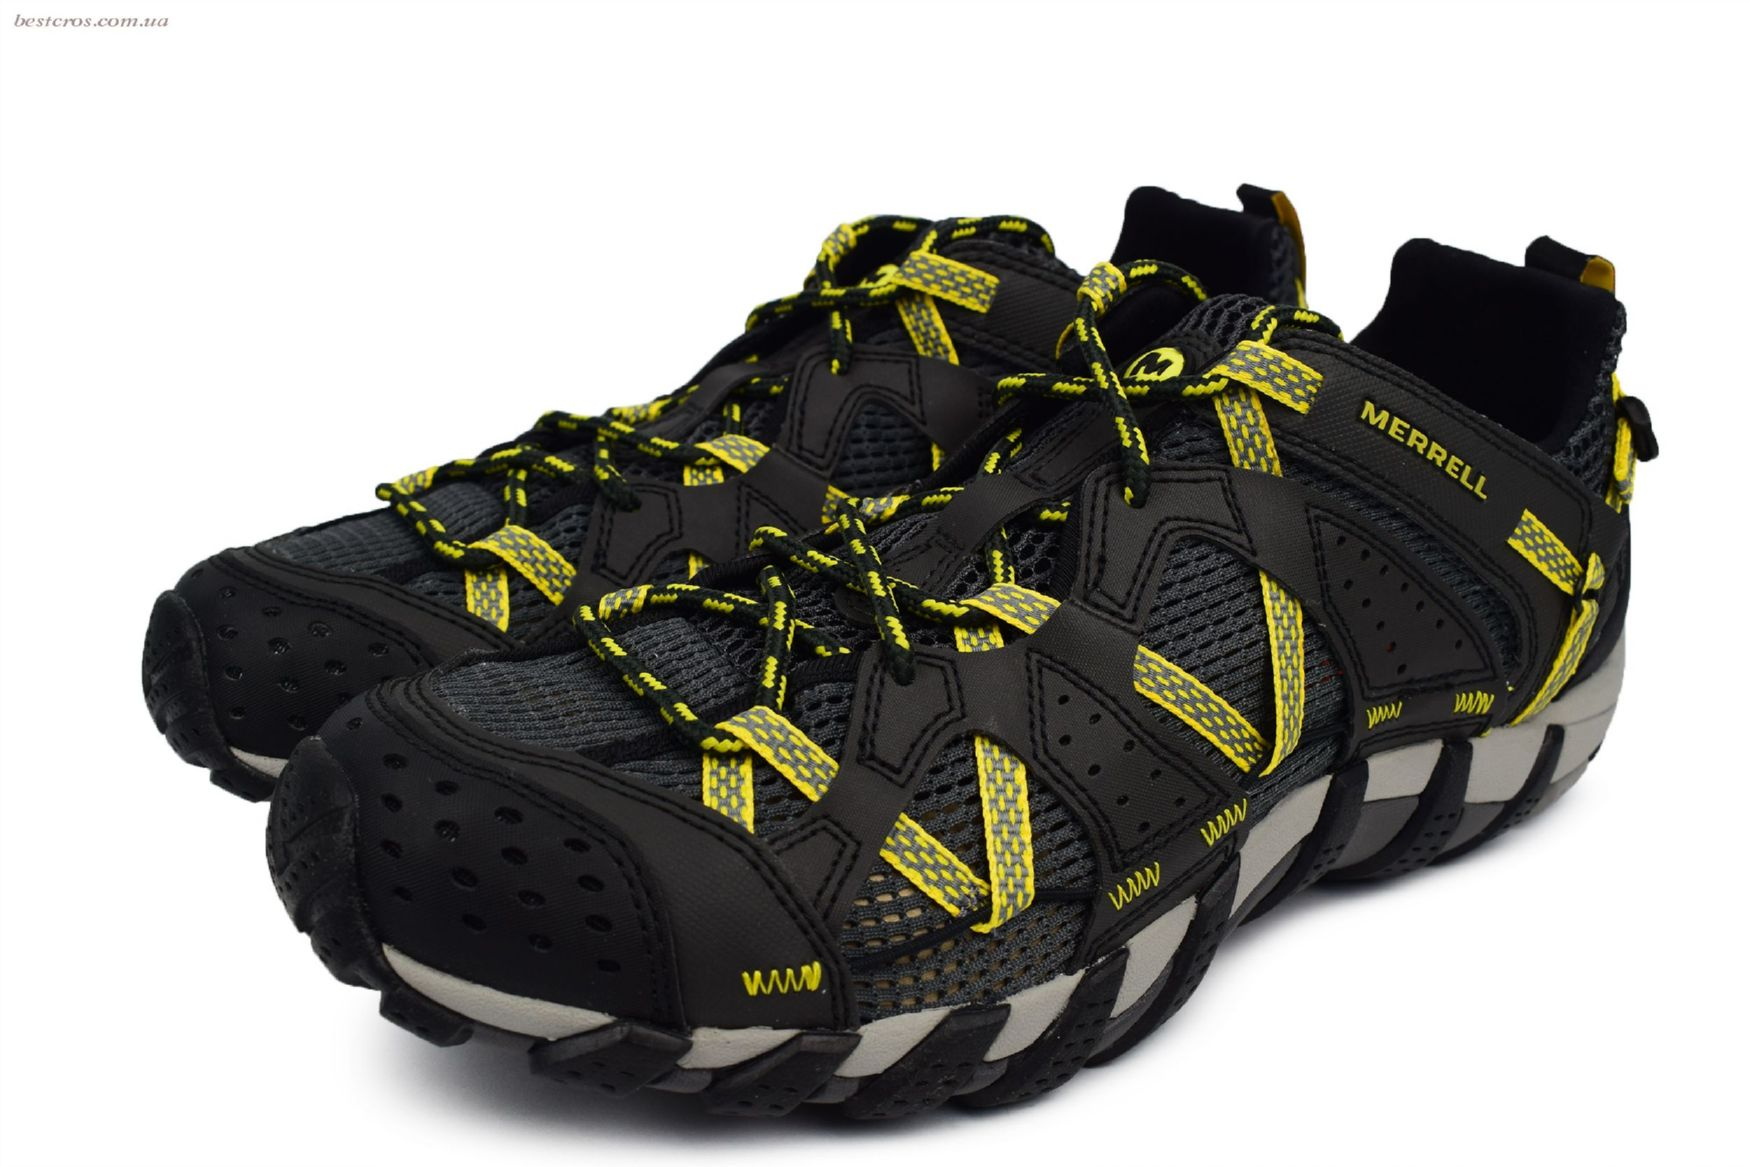 Мужские кроссовки Merrell Waterpro Maipo Black/Yellow - фото №6